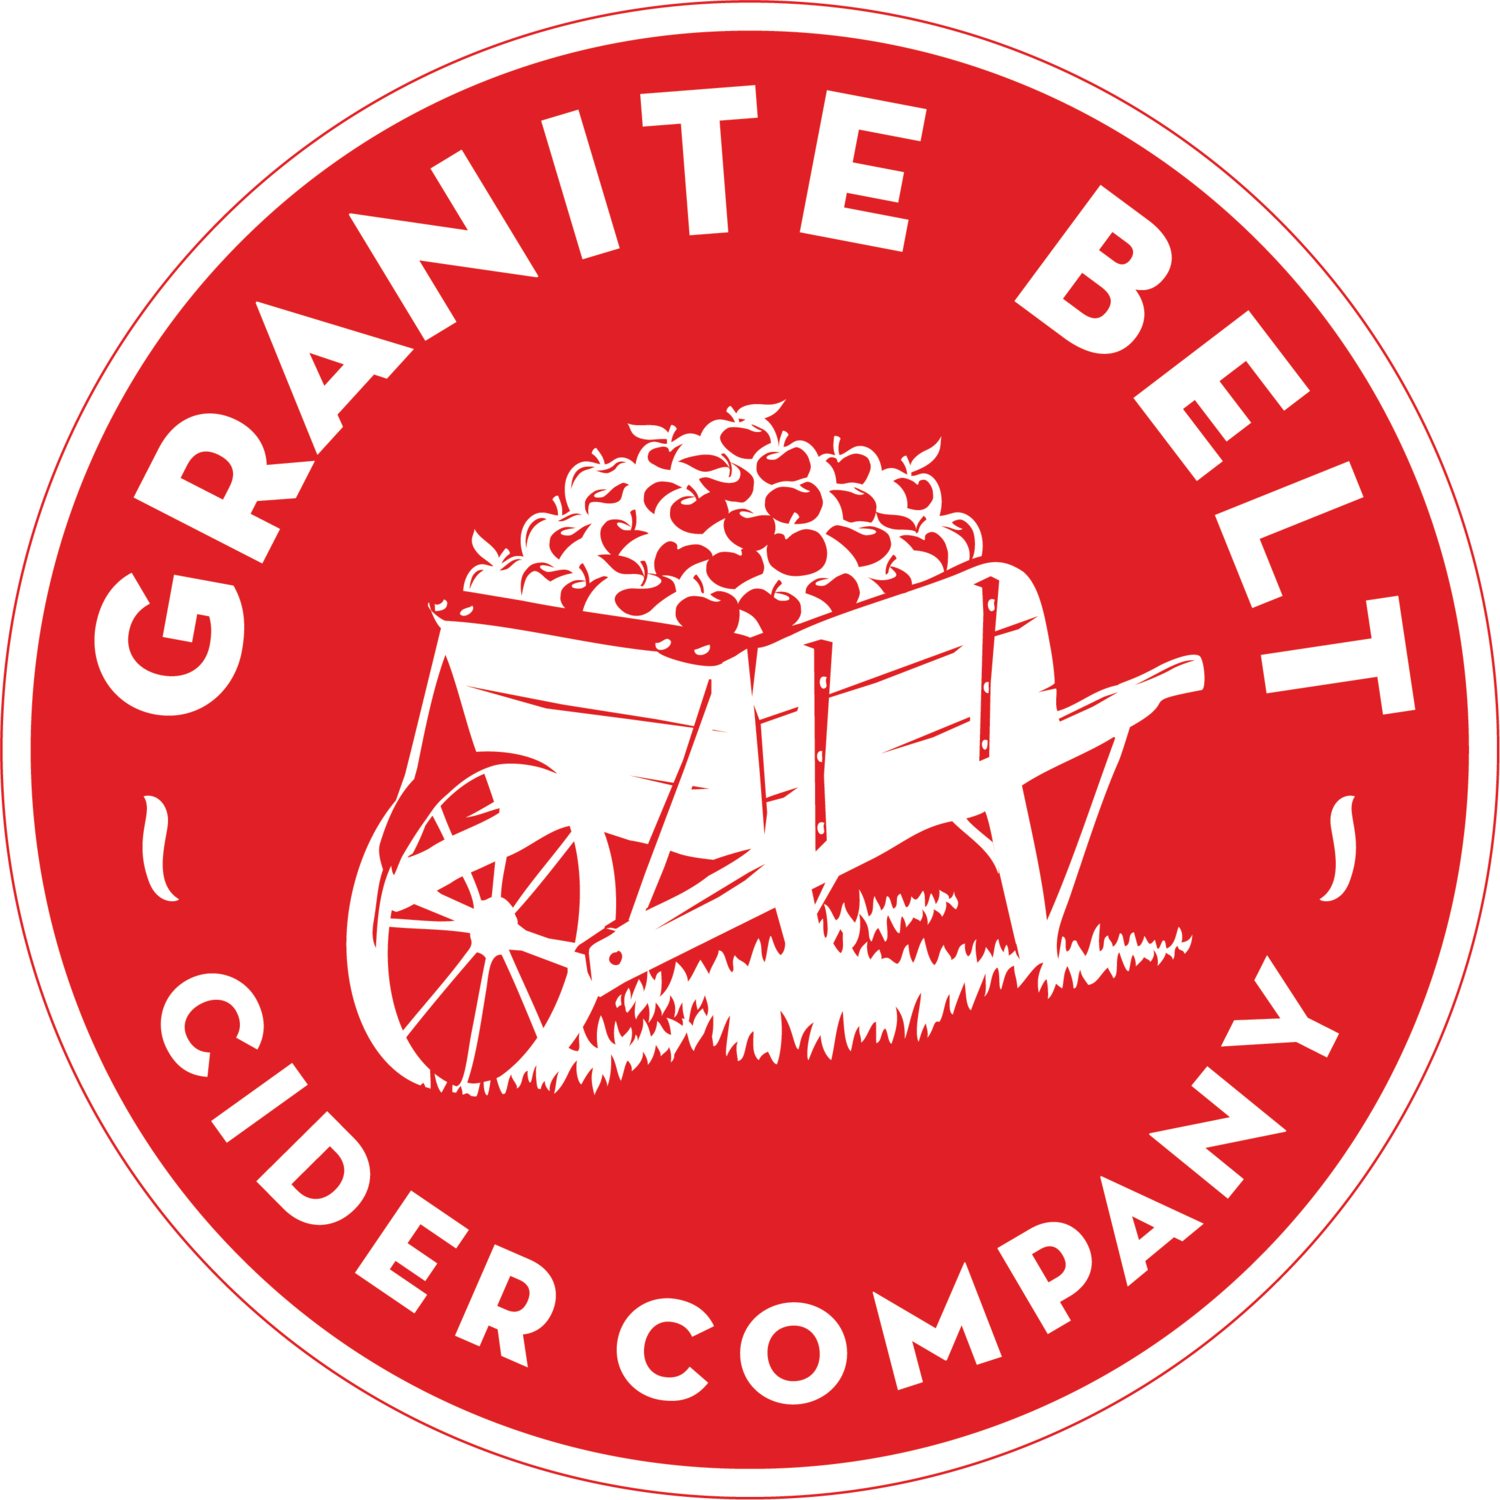 Granite Belt Cider Co